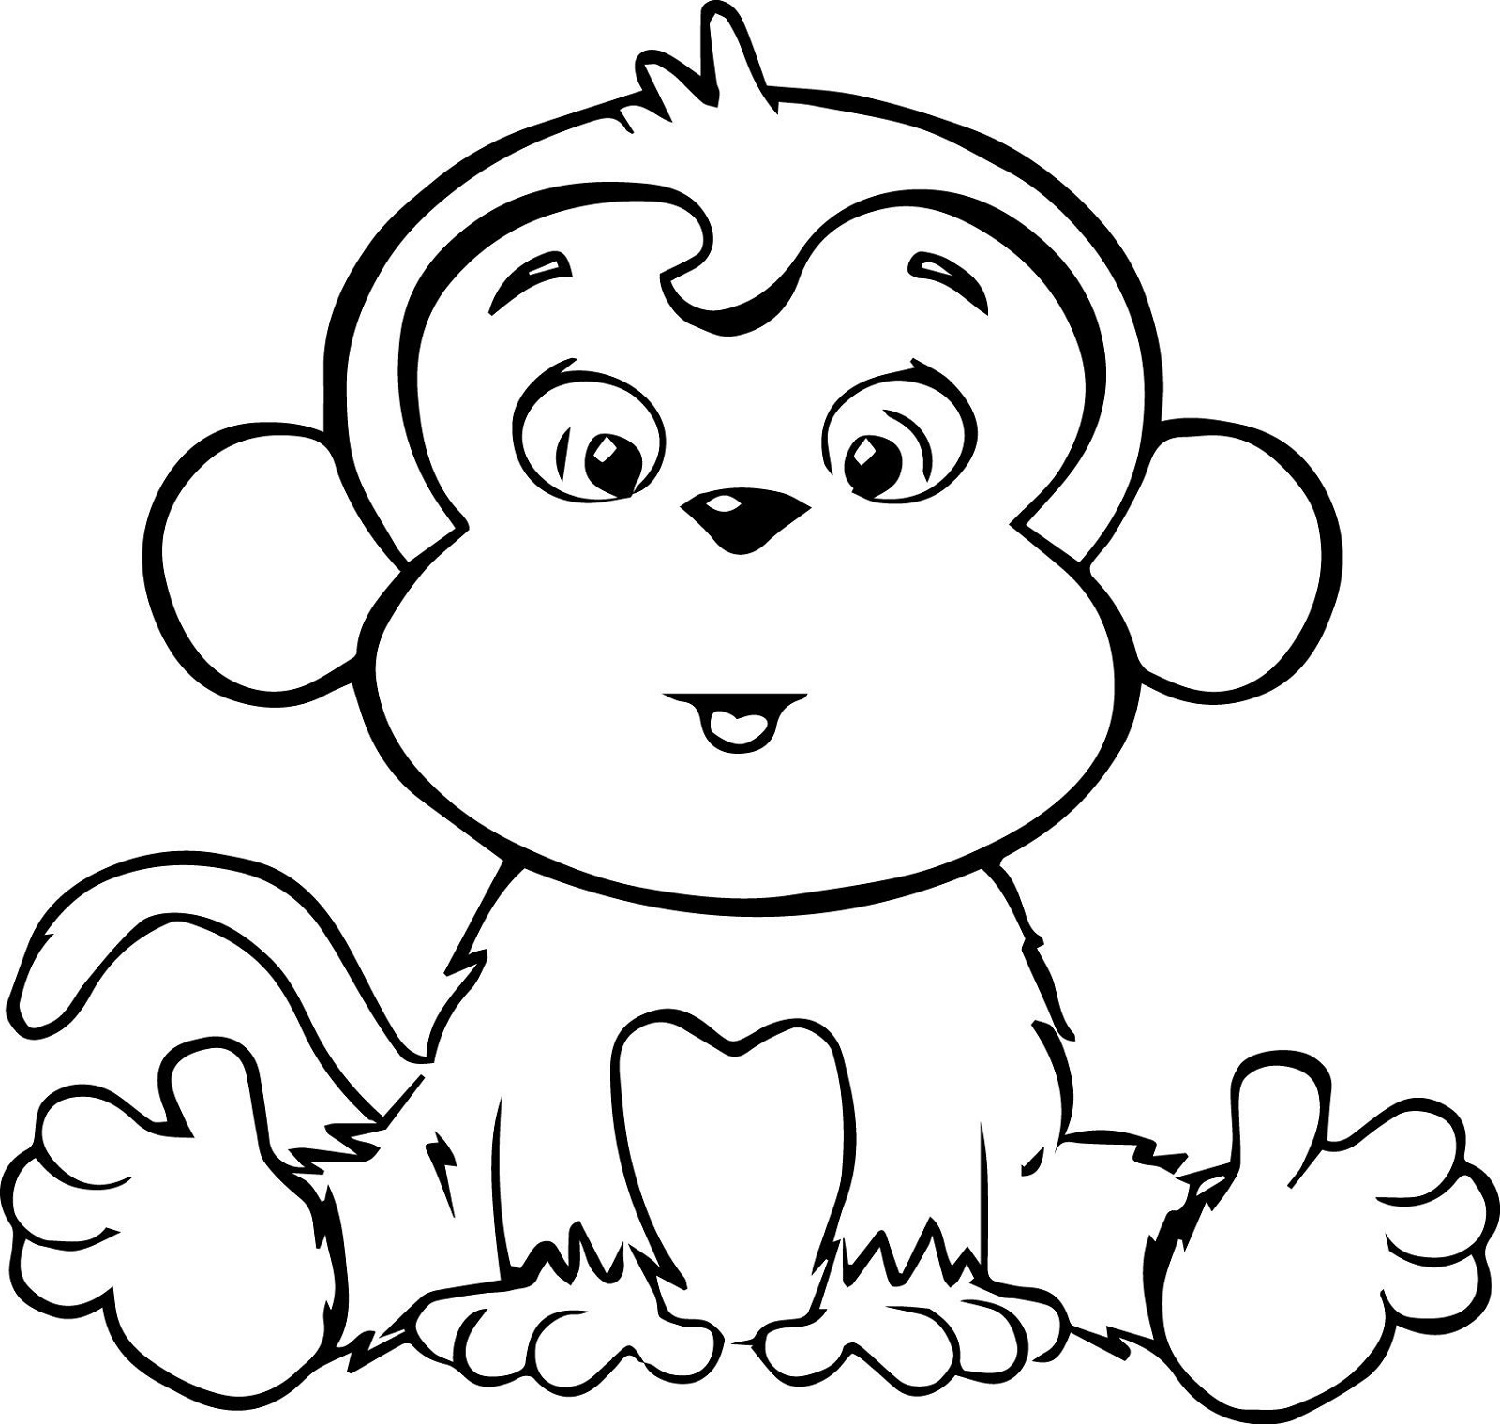 cute monkey coloring pages coloring pictures of monkeys monkey coloring pages easy pages monkey coloring cute